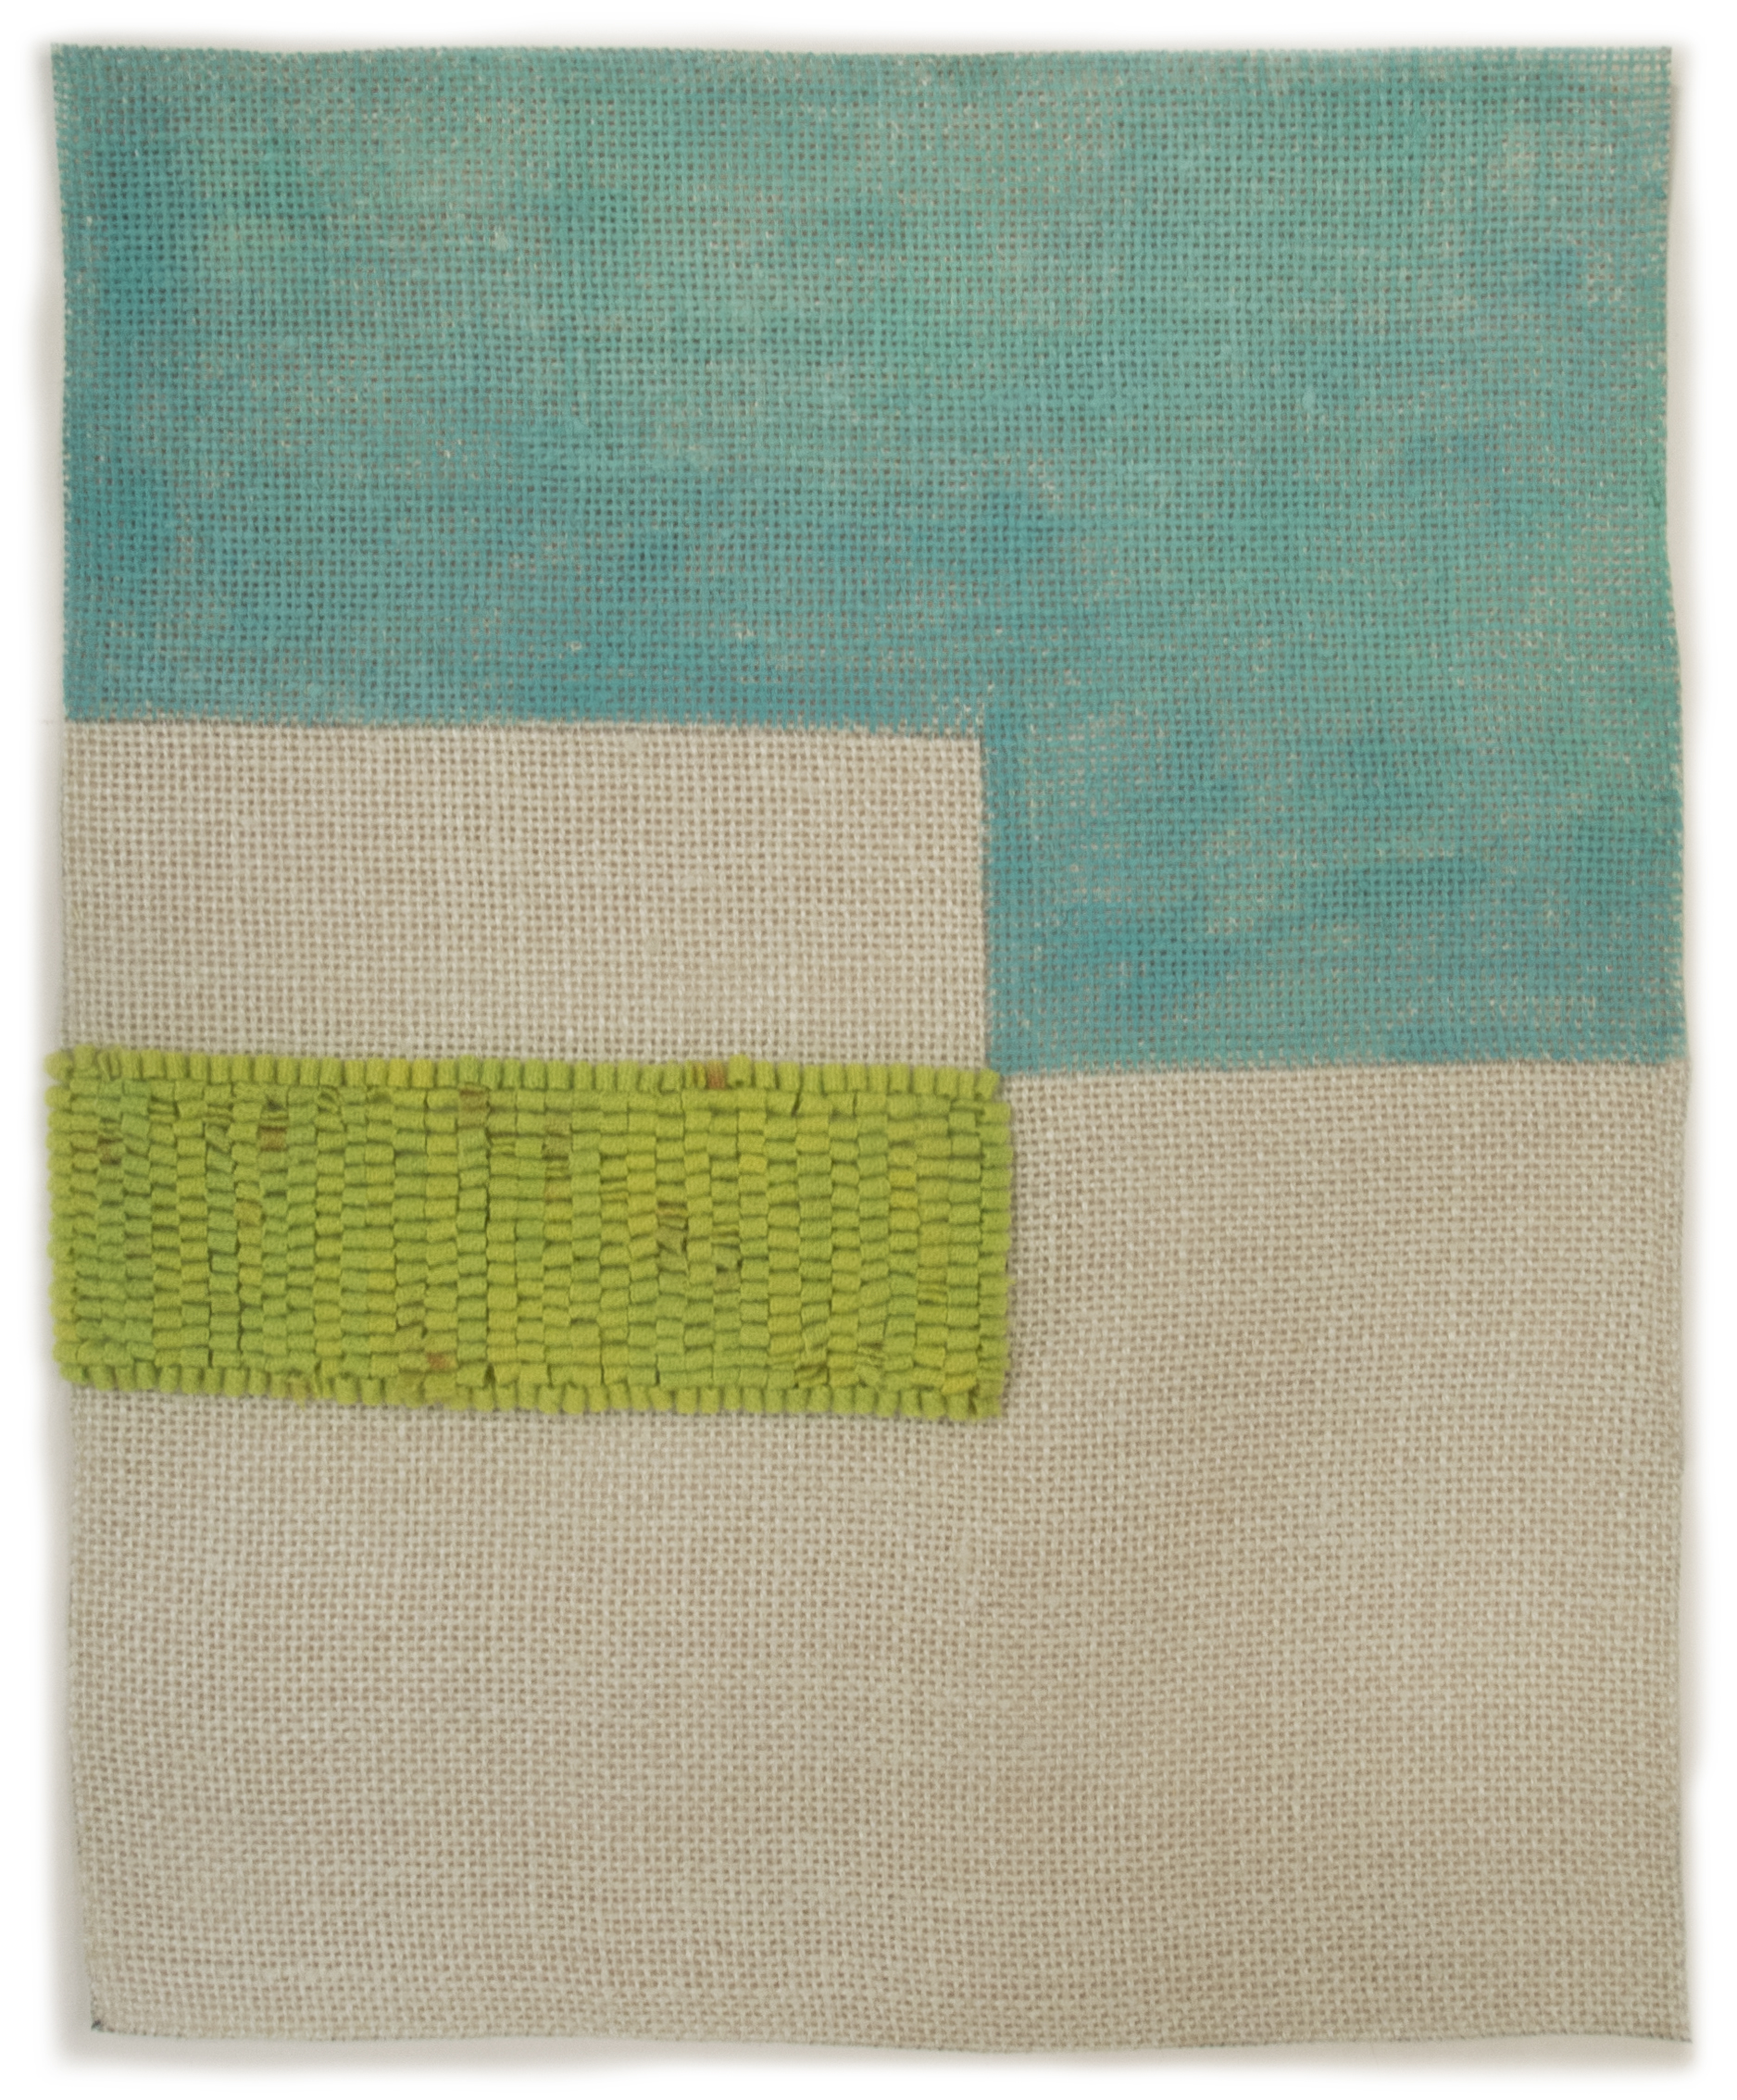 Altoon Sultan: 2013 #10, 2013, hand dyed wool and egg tempera onlinen, multi part, 15 x 12